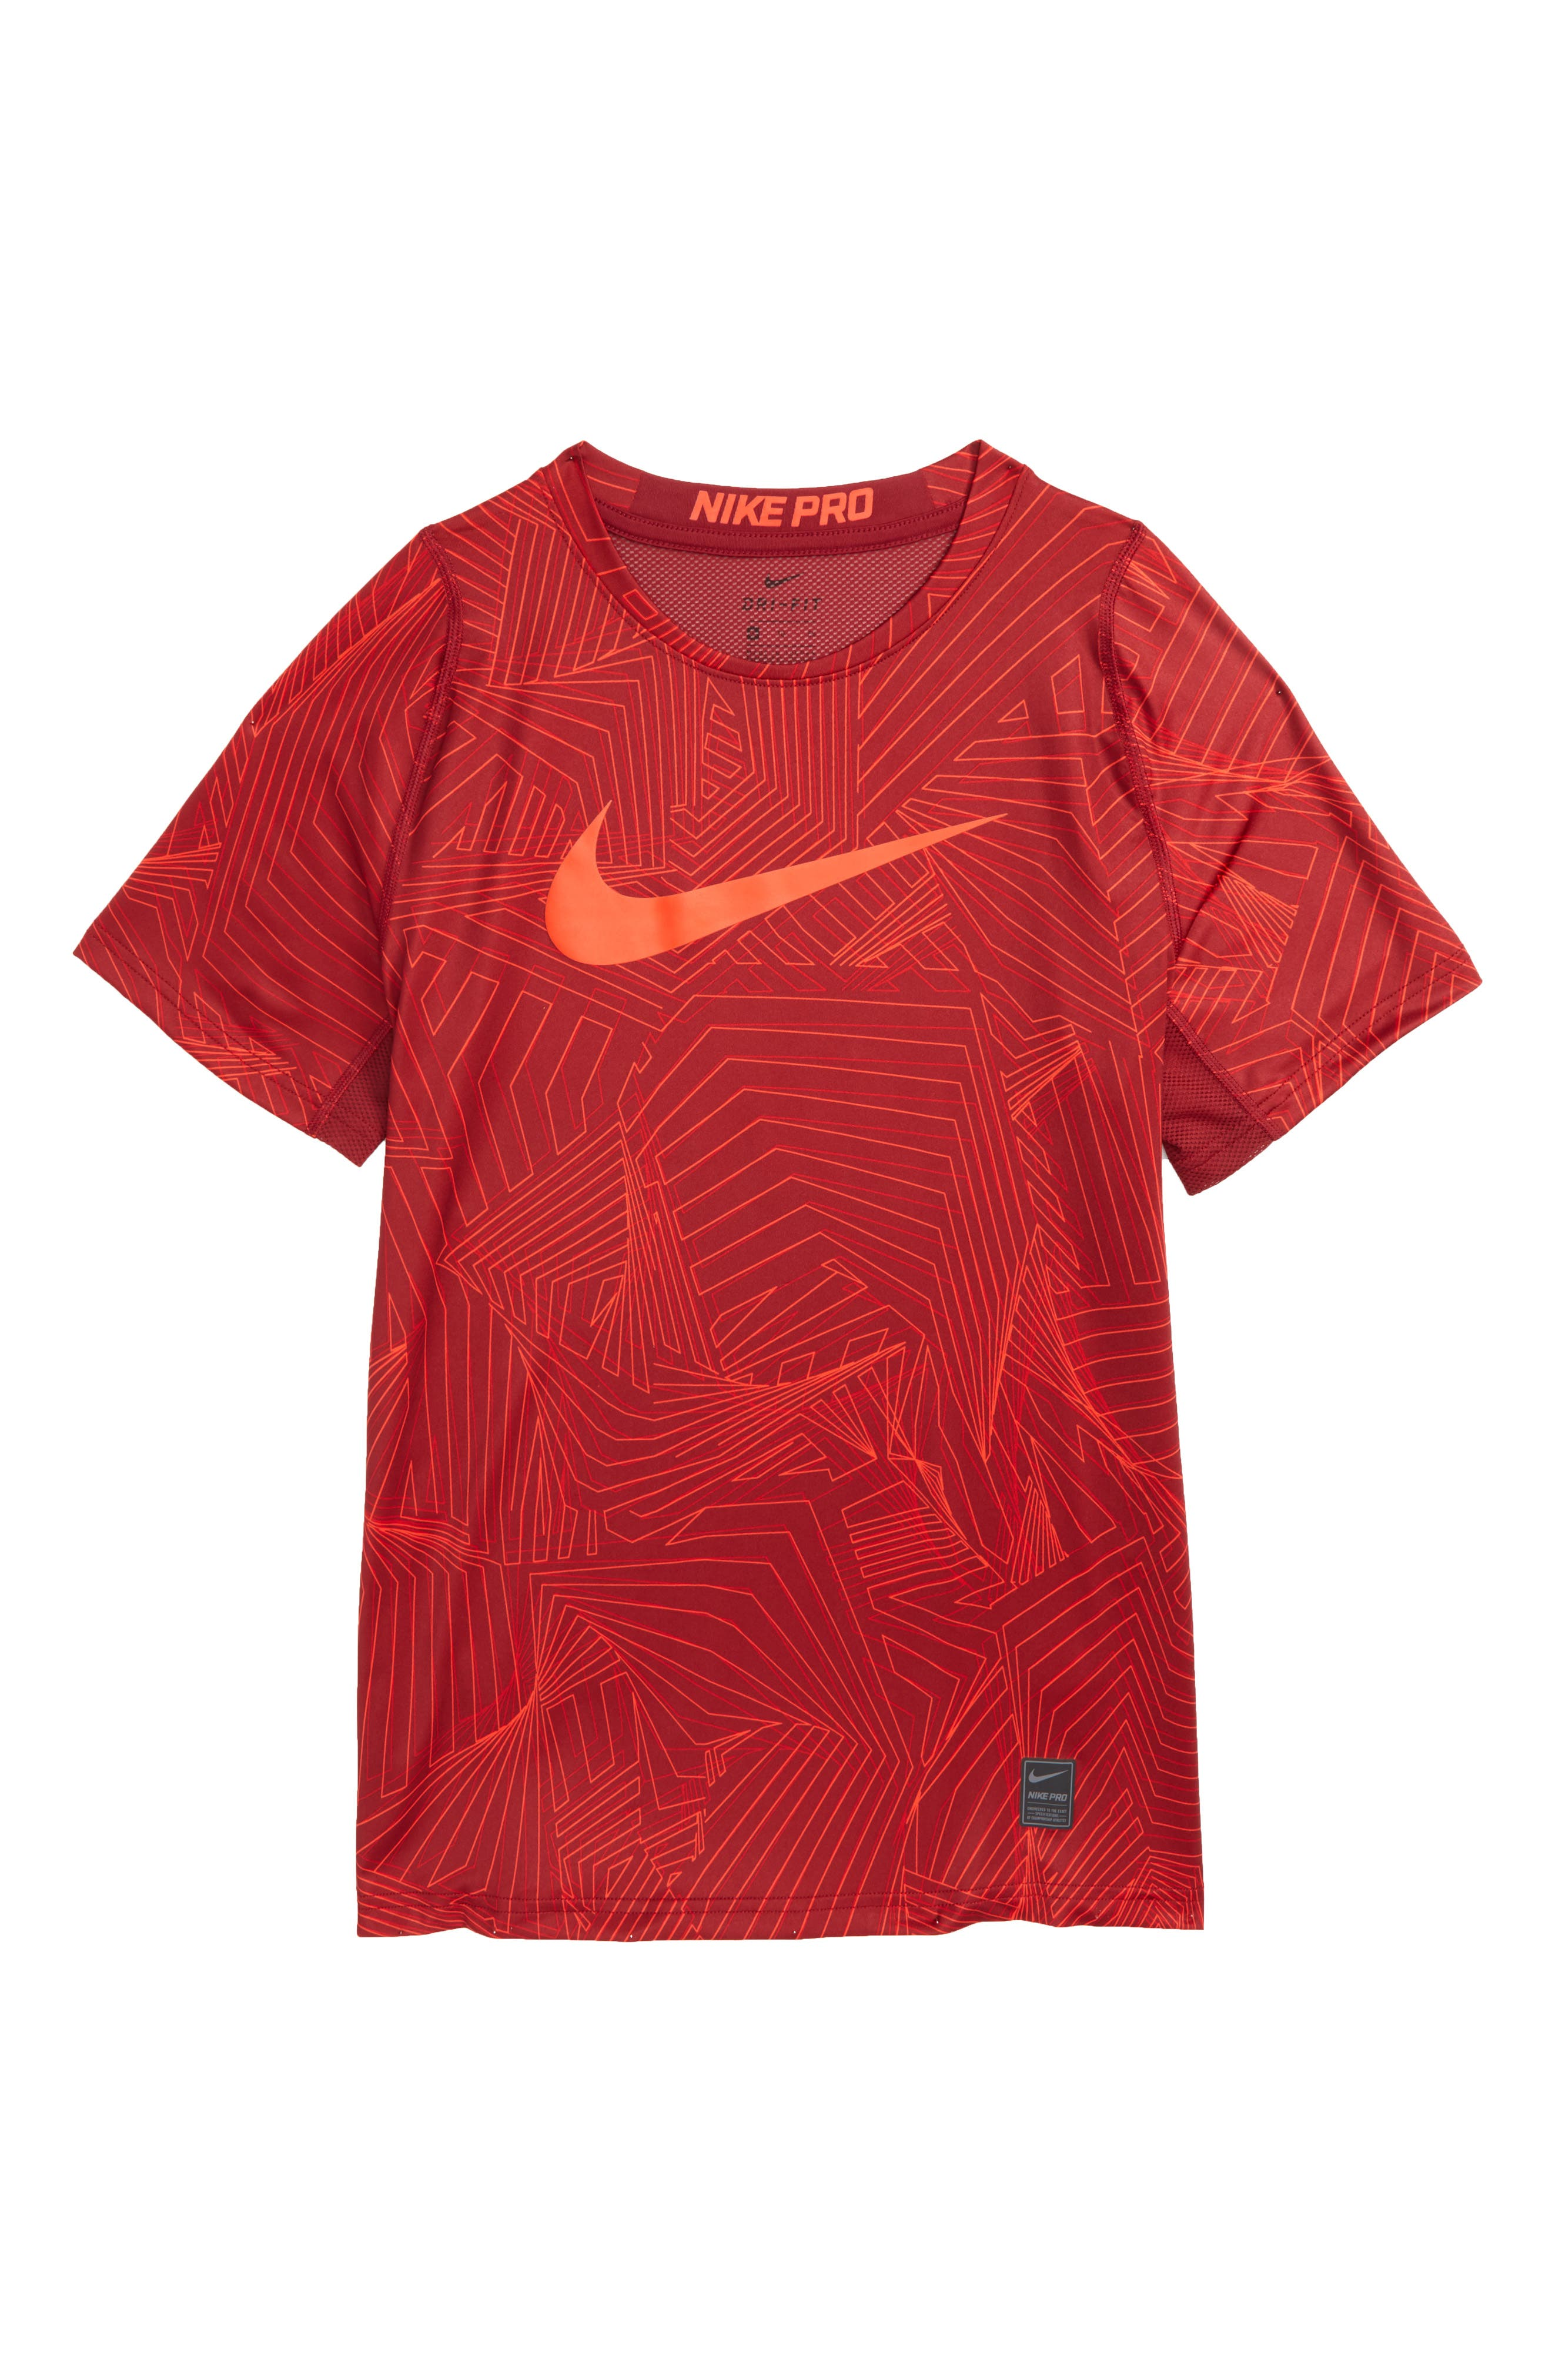 Pro Fitted Training Shirt,                             Main thumbnail 1, color,                             Team Red